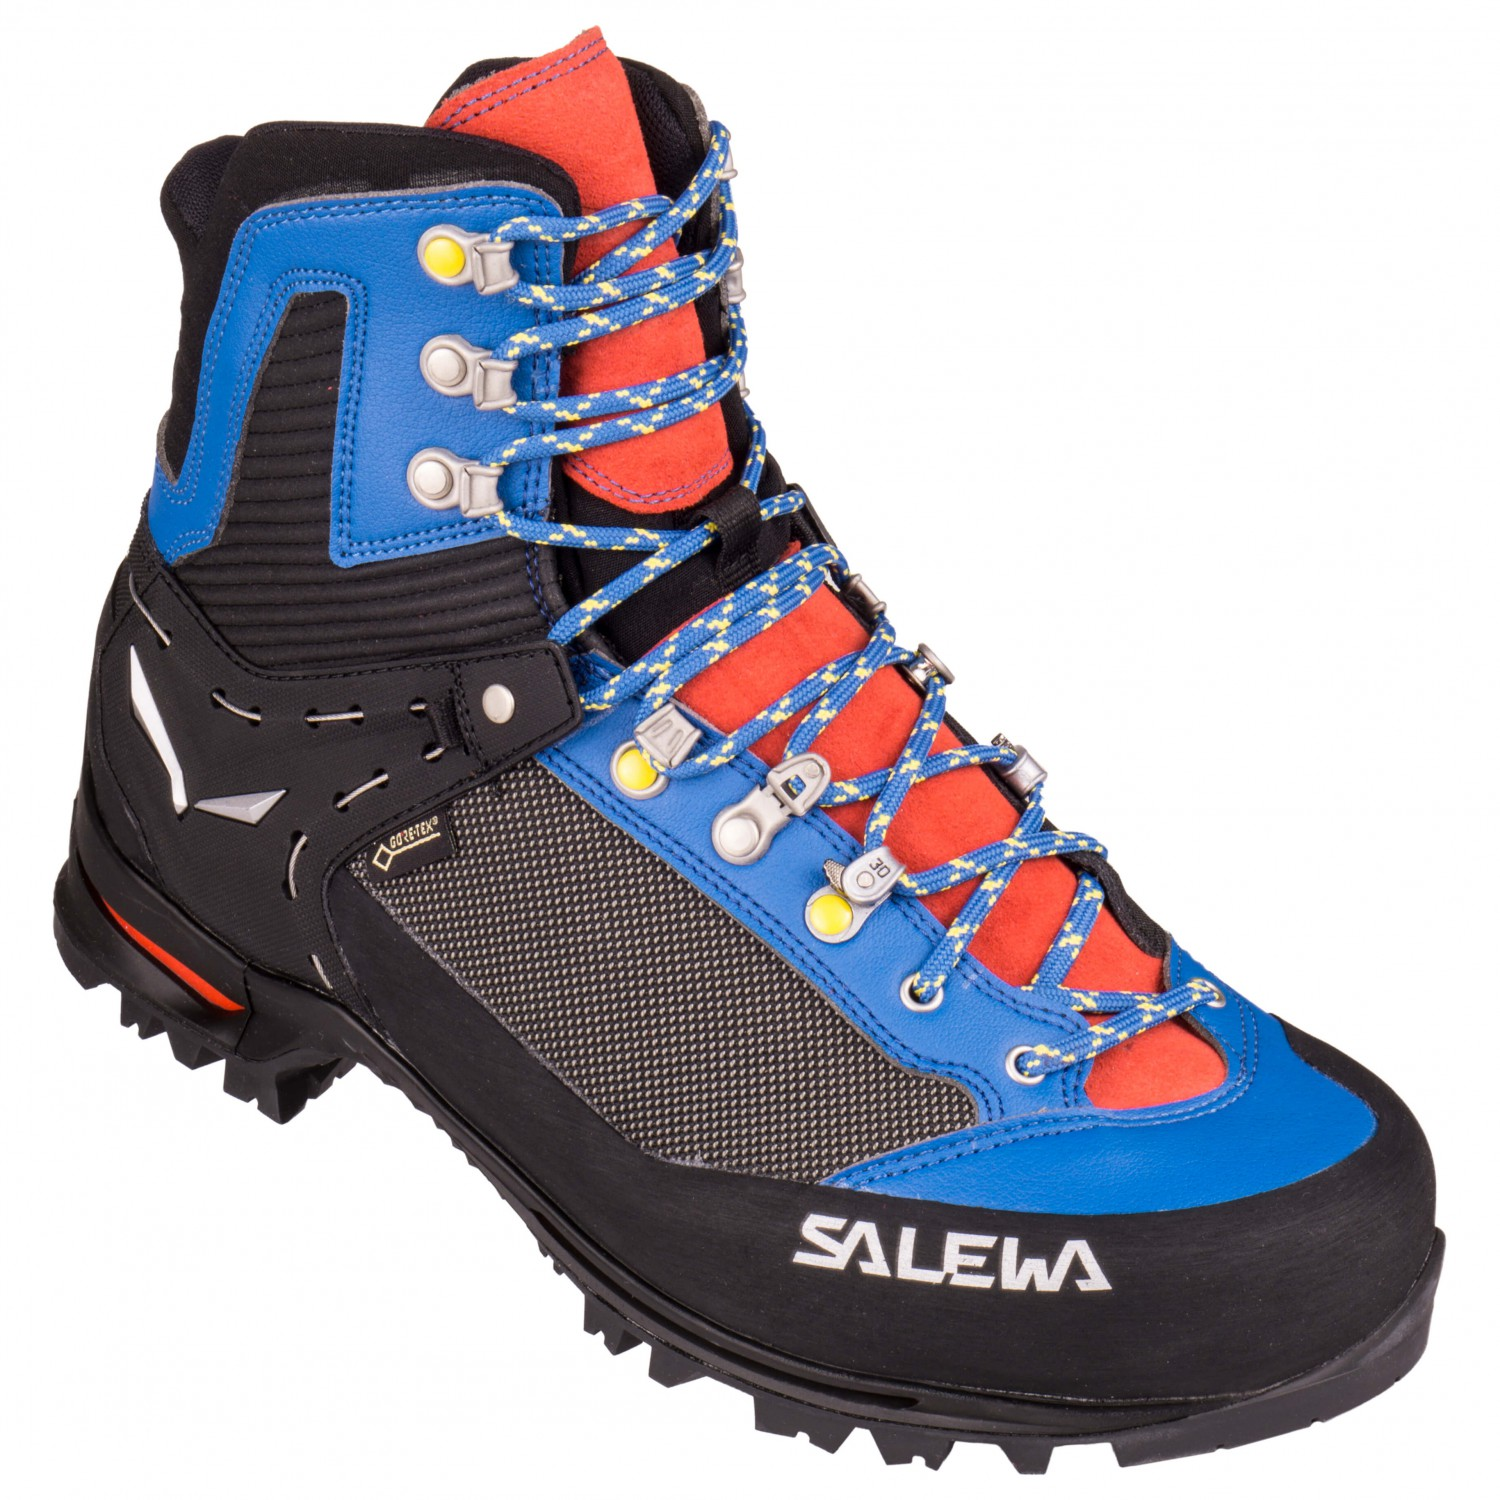 Salewa Raven 2 Gtx Mountaineering Boots Men S Free Uk